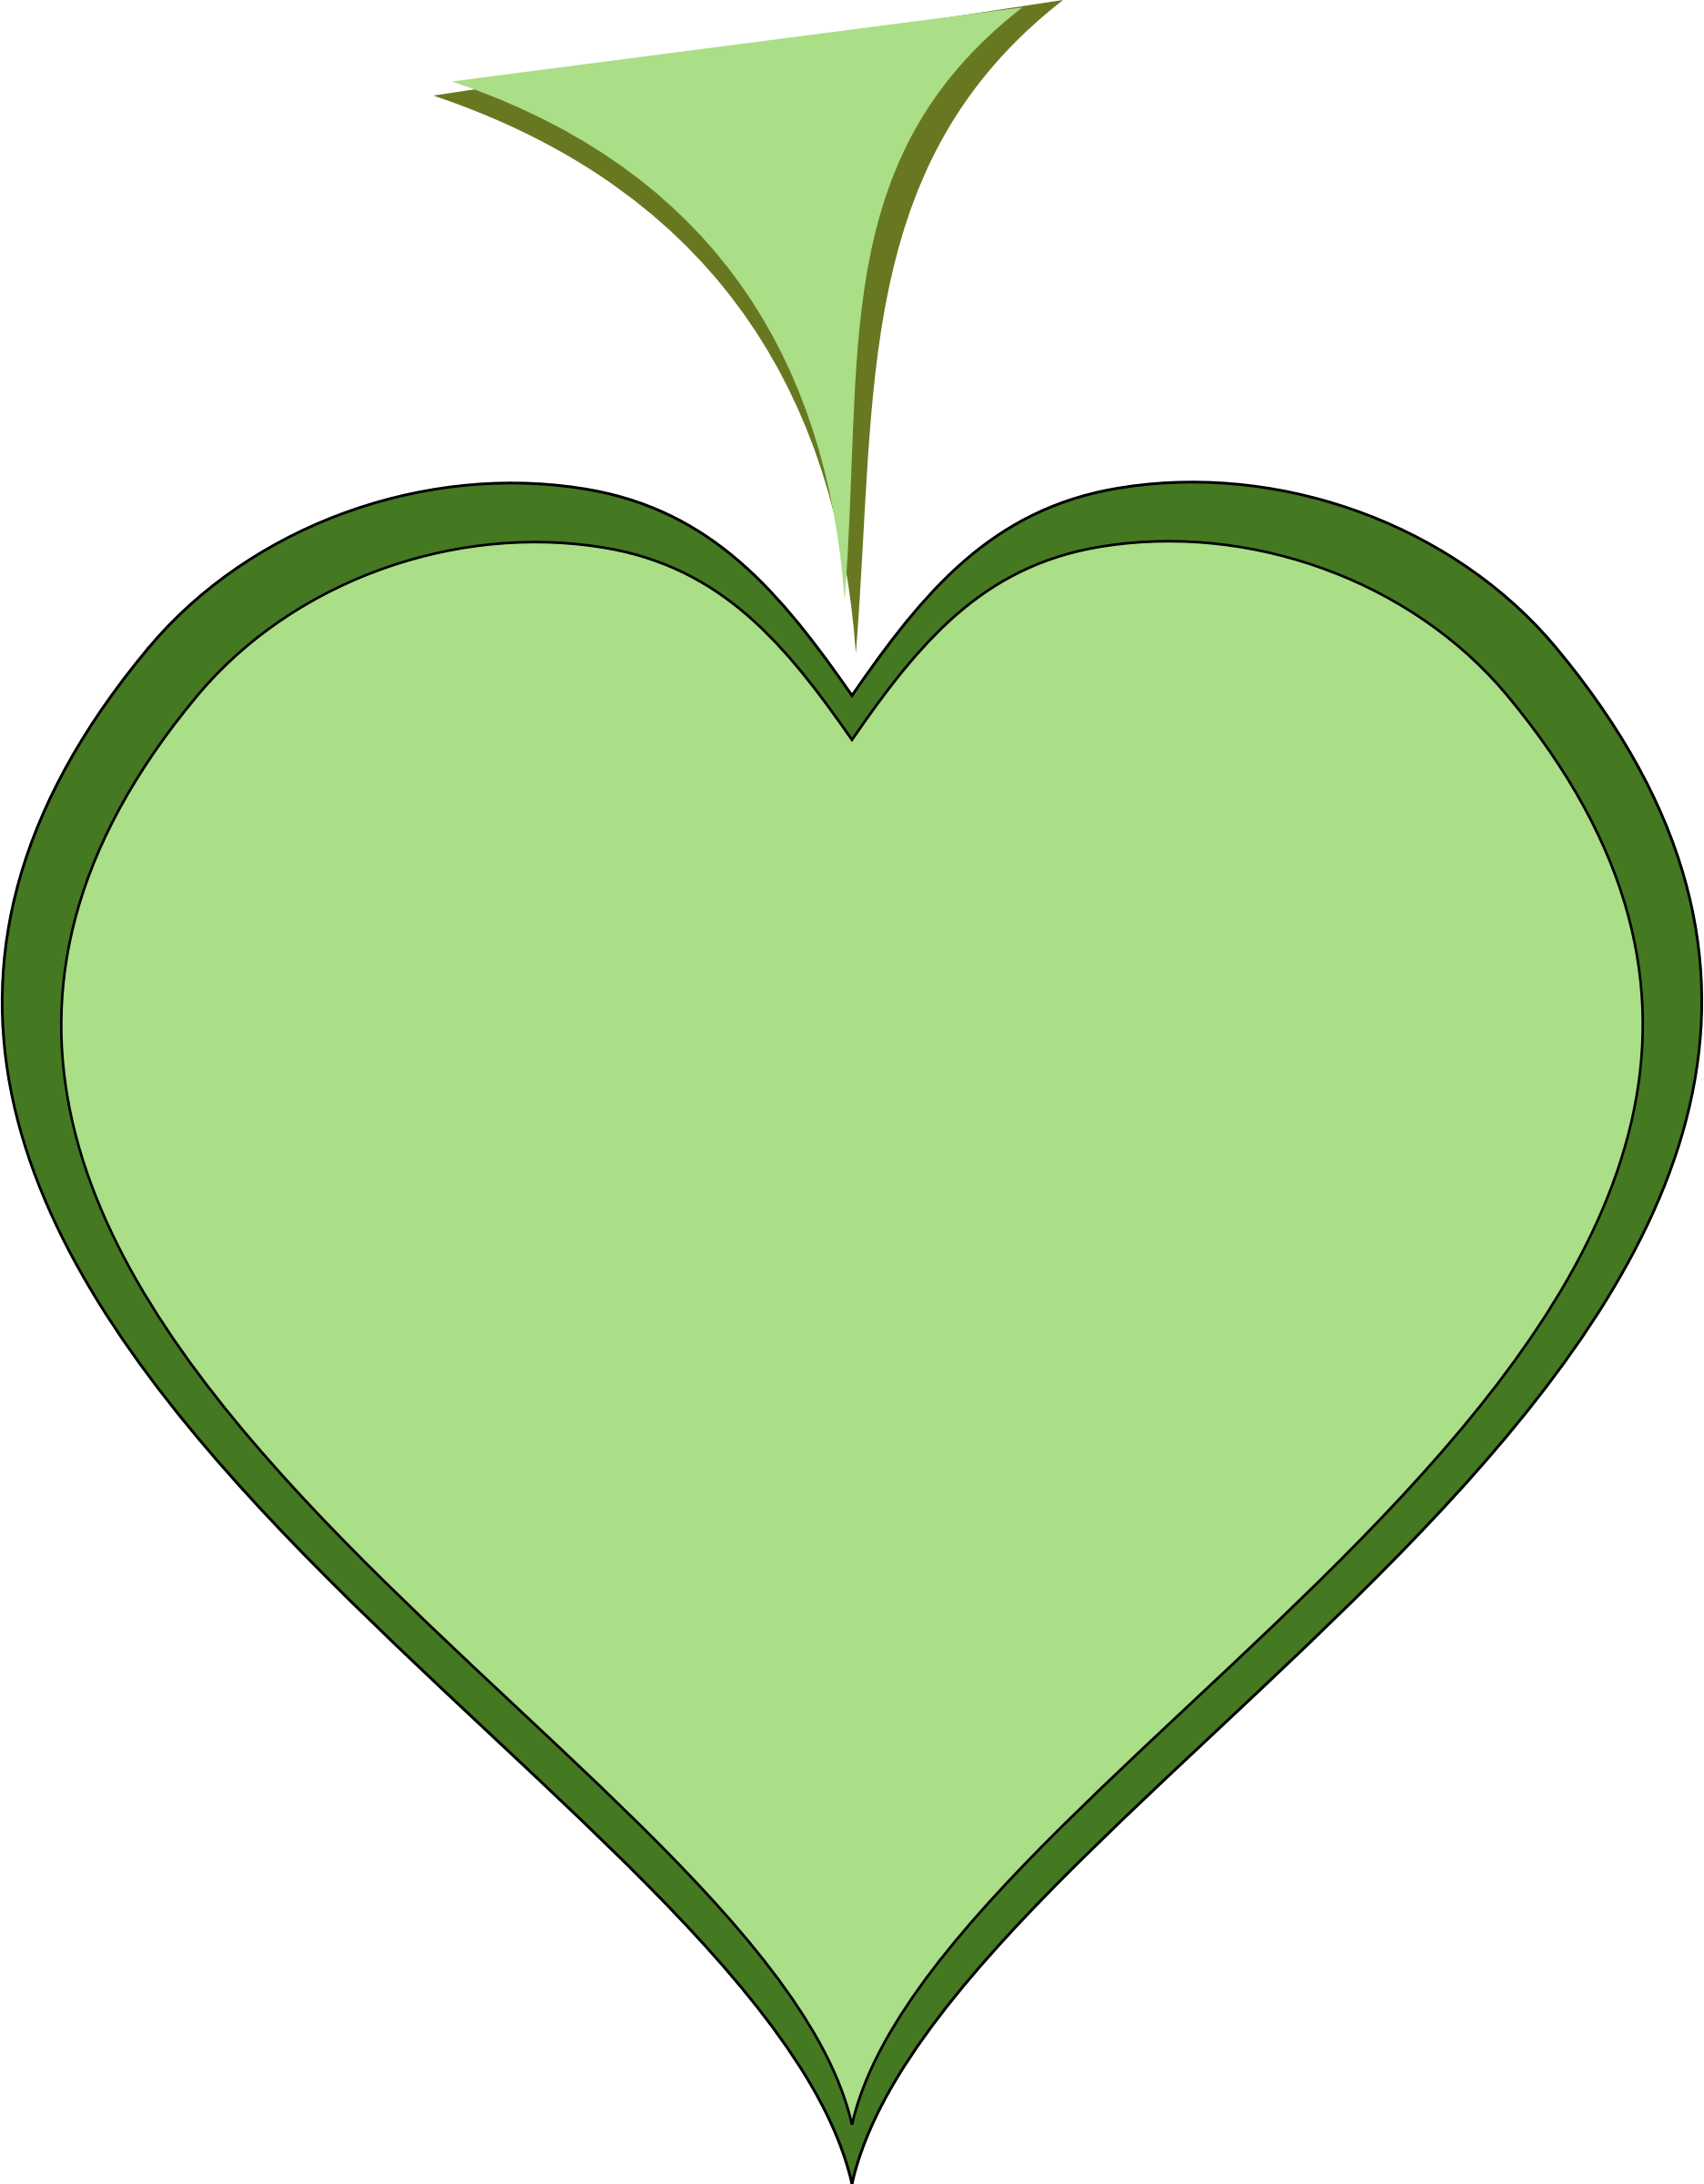 Green Heart by arking